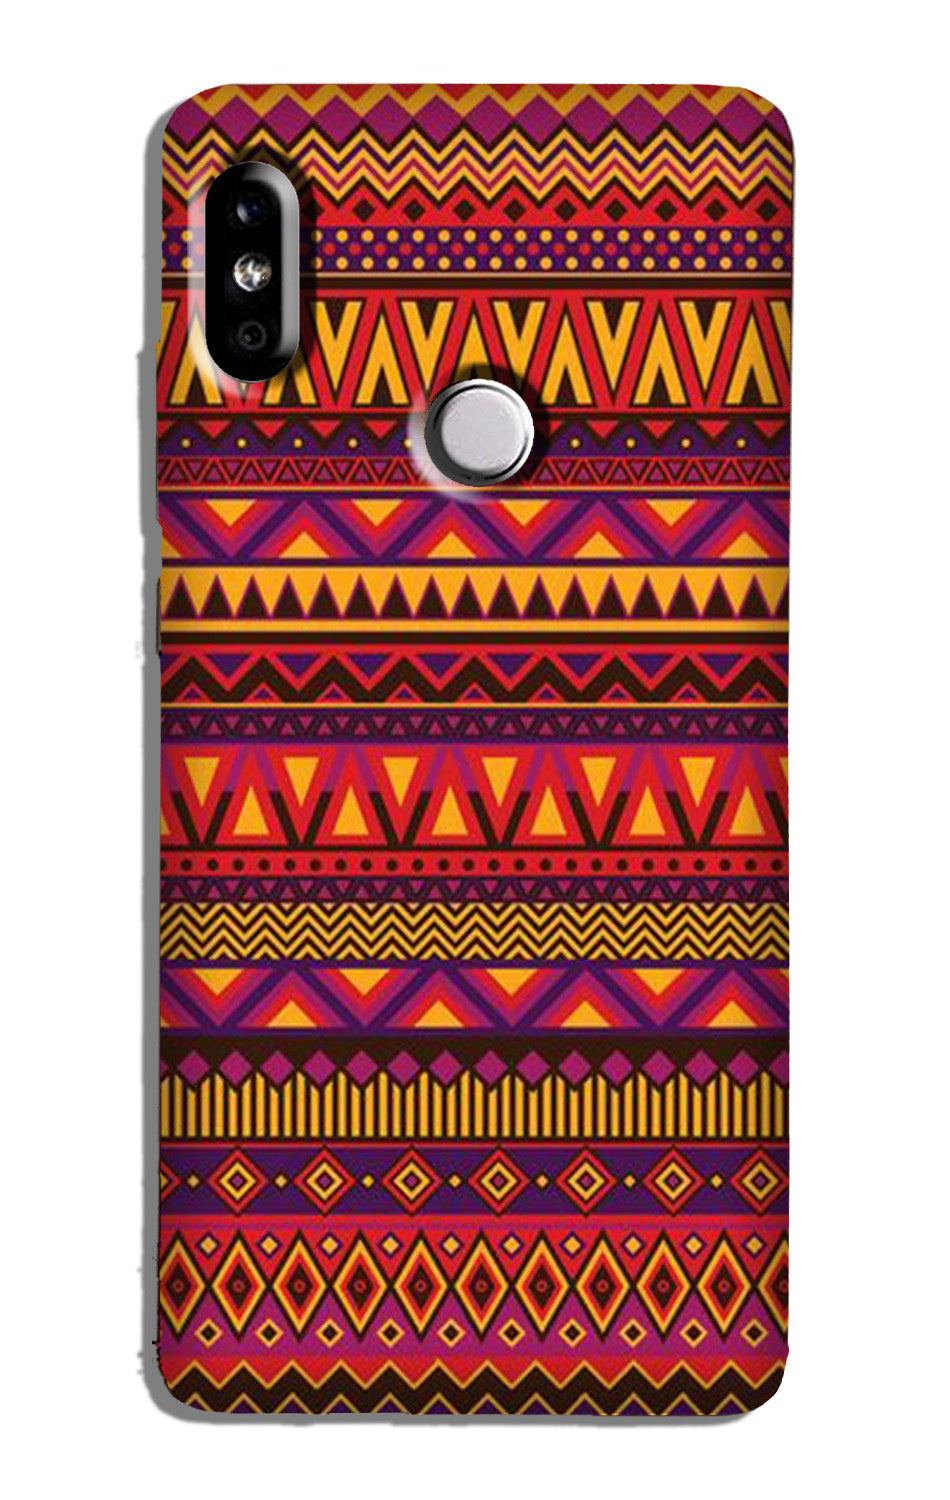 Zigzag line pattern2 Case for Redmi Note 6 Pro